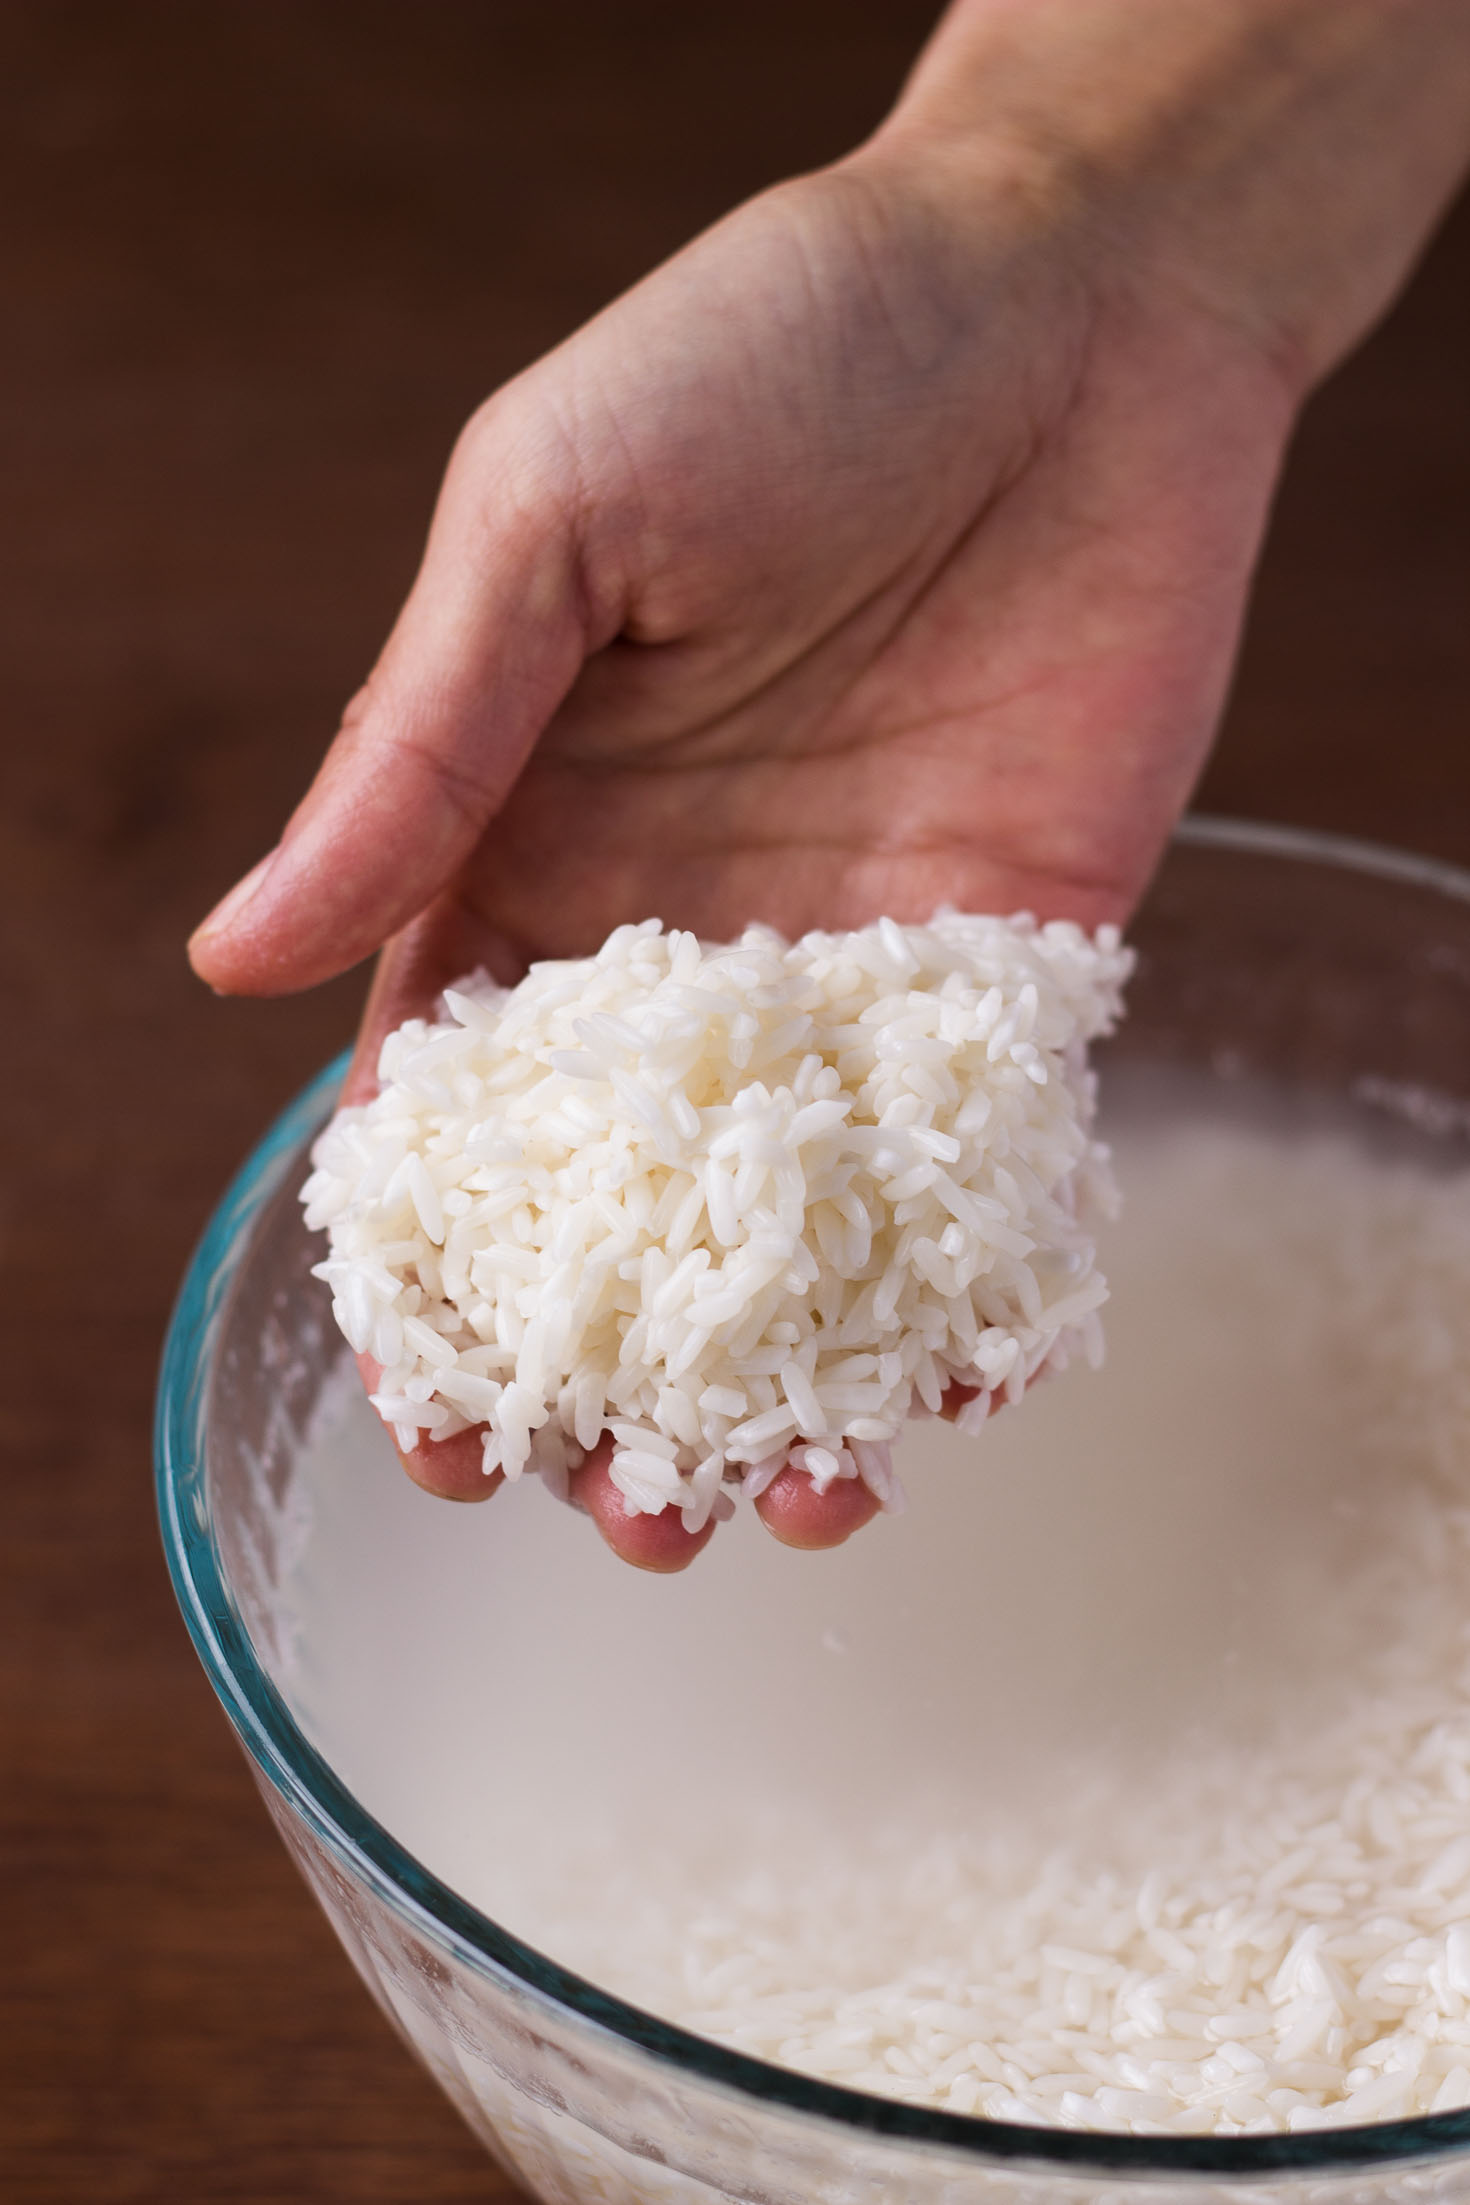 How to Make Fermented Sweet Rice (Jiuniang, Tapai)